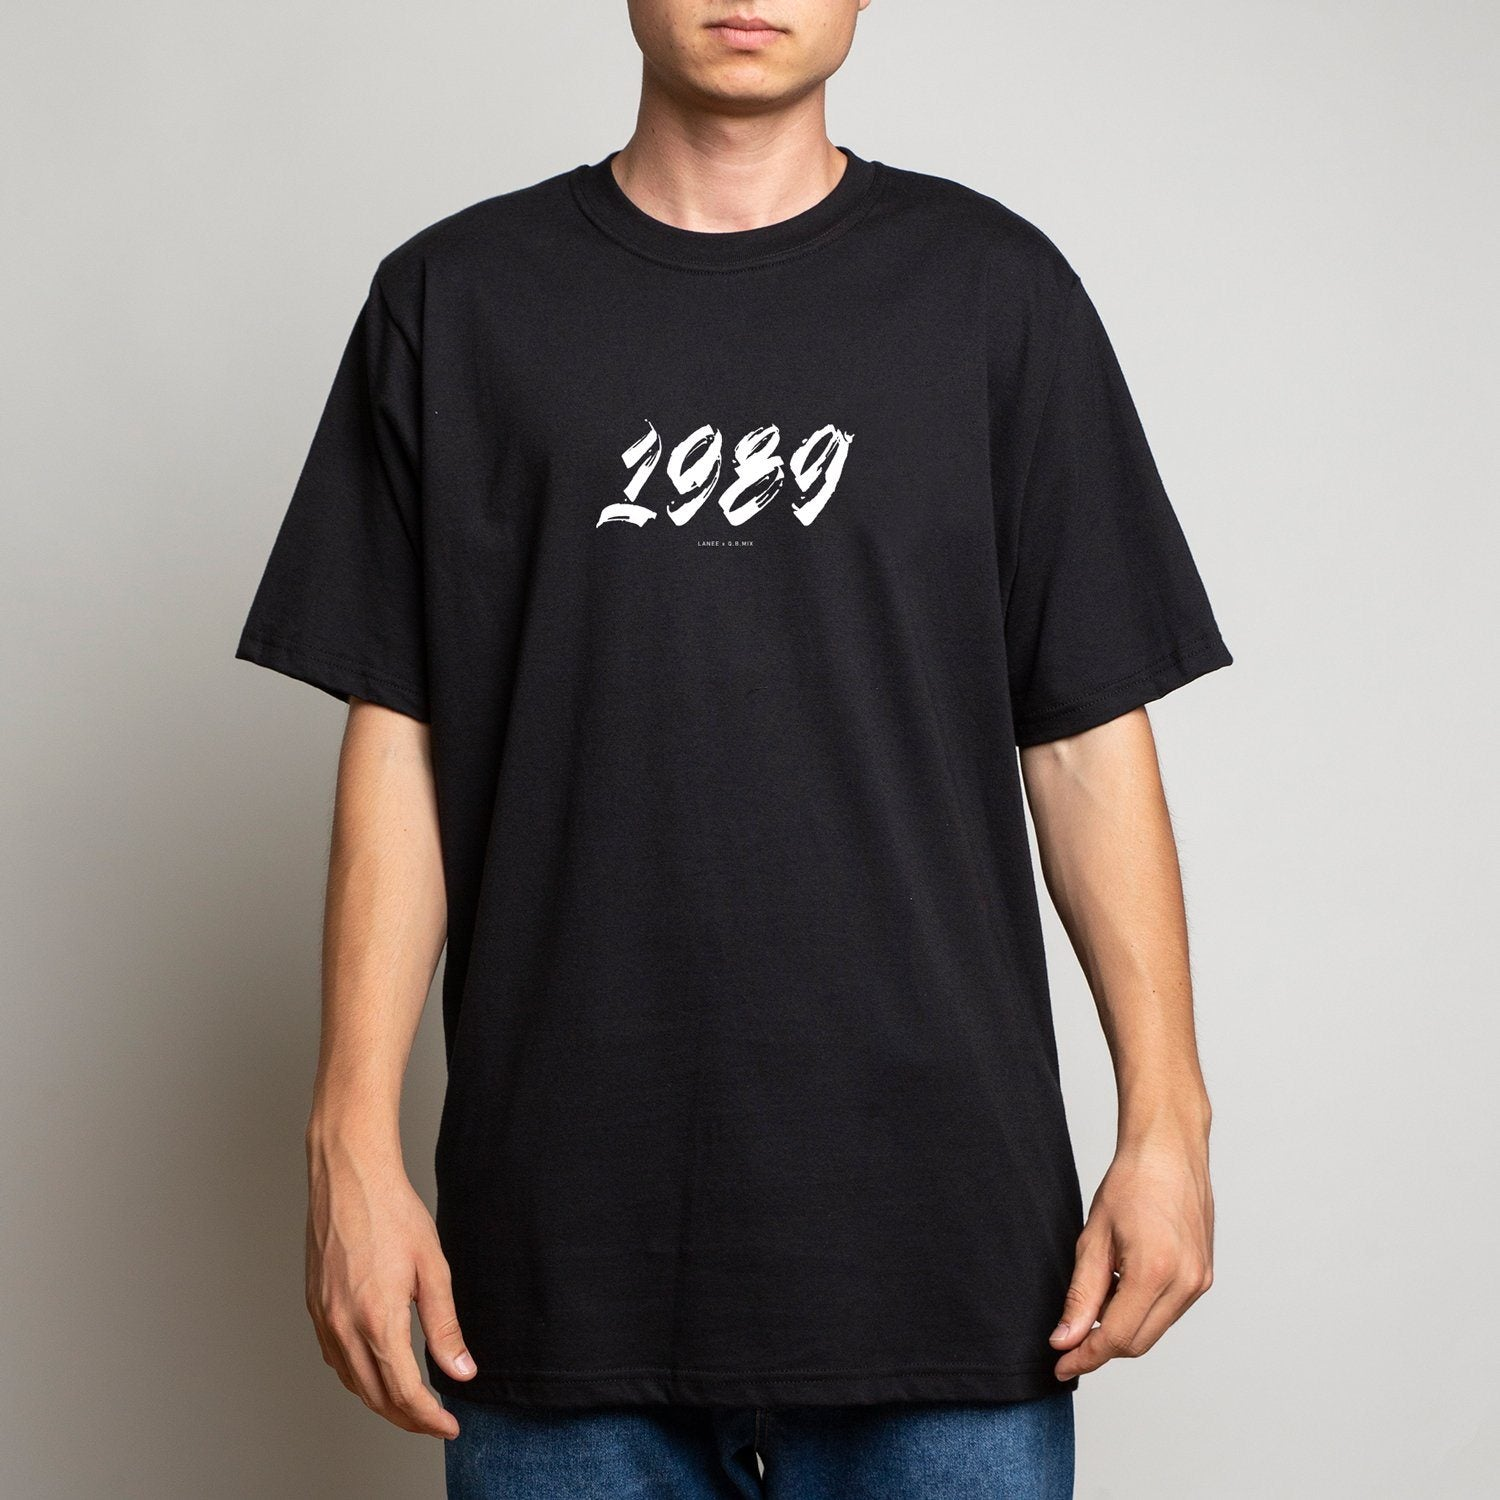 LANEE X Q.B.MIX 1989 BLACK TSHIRT